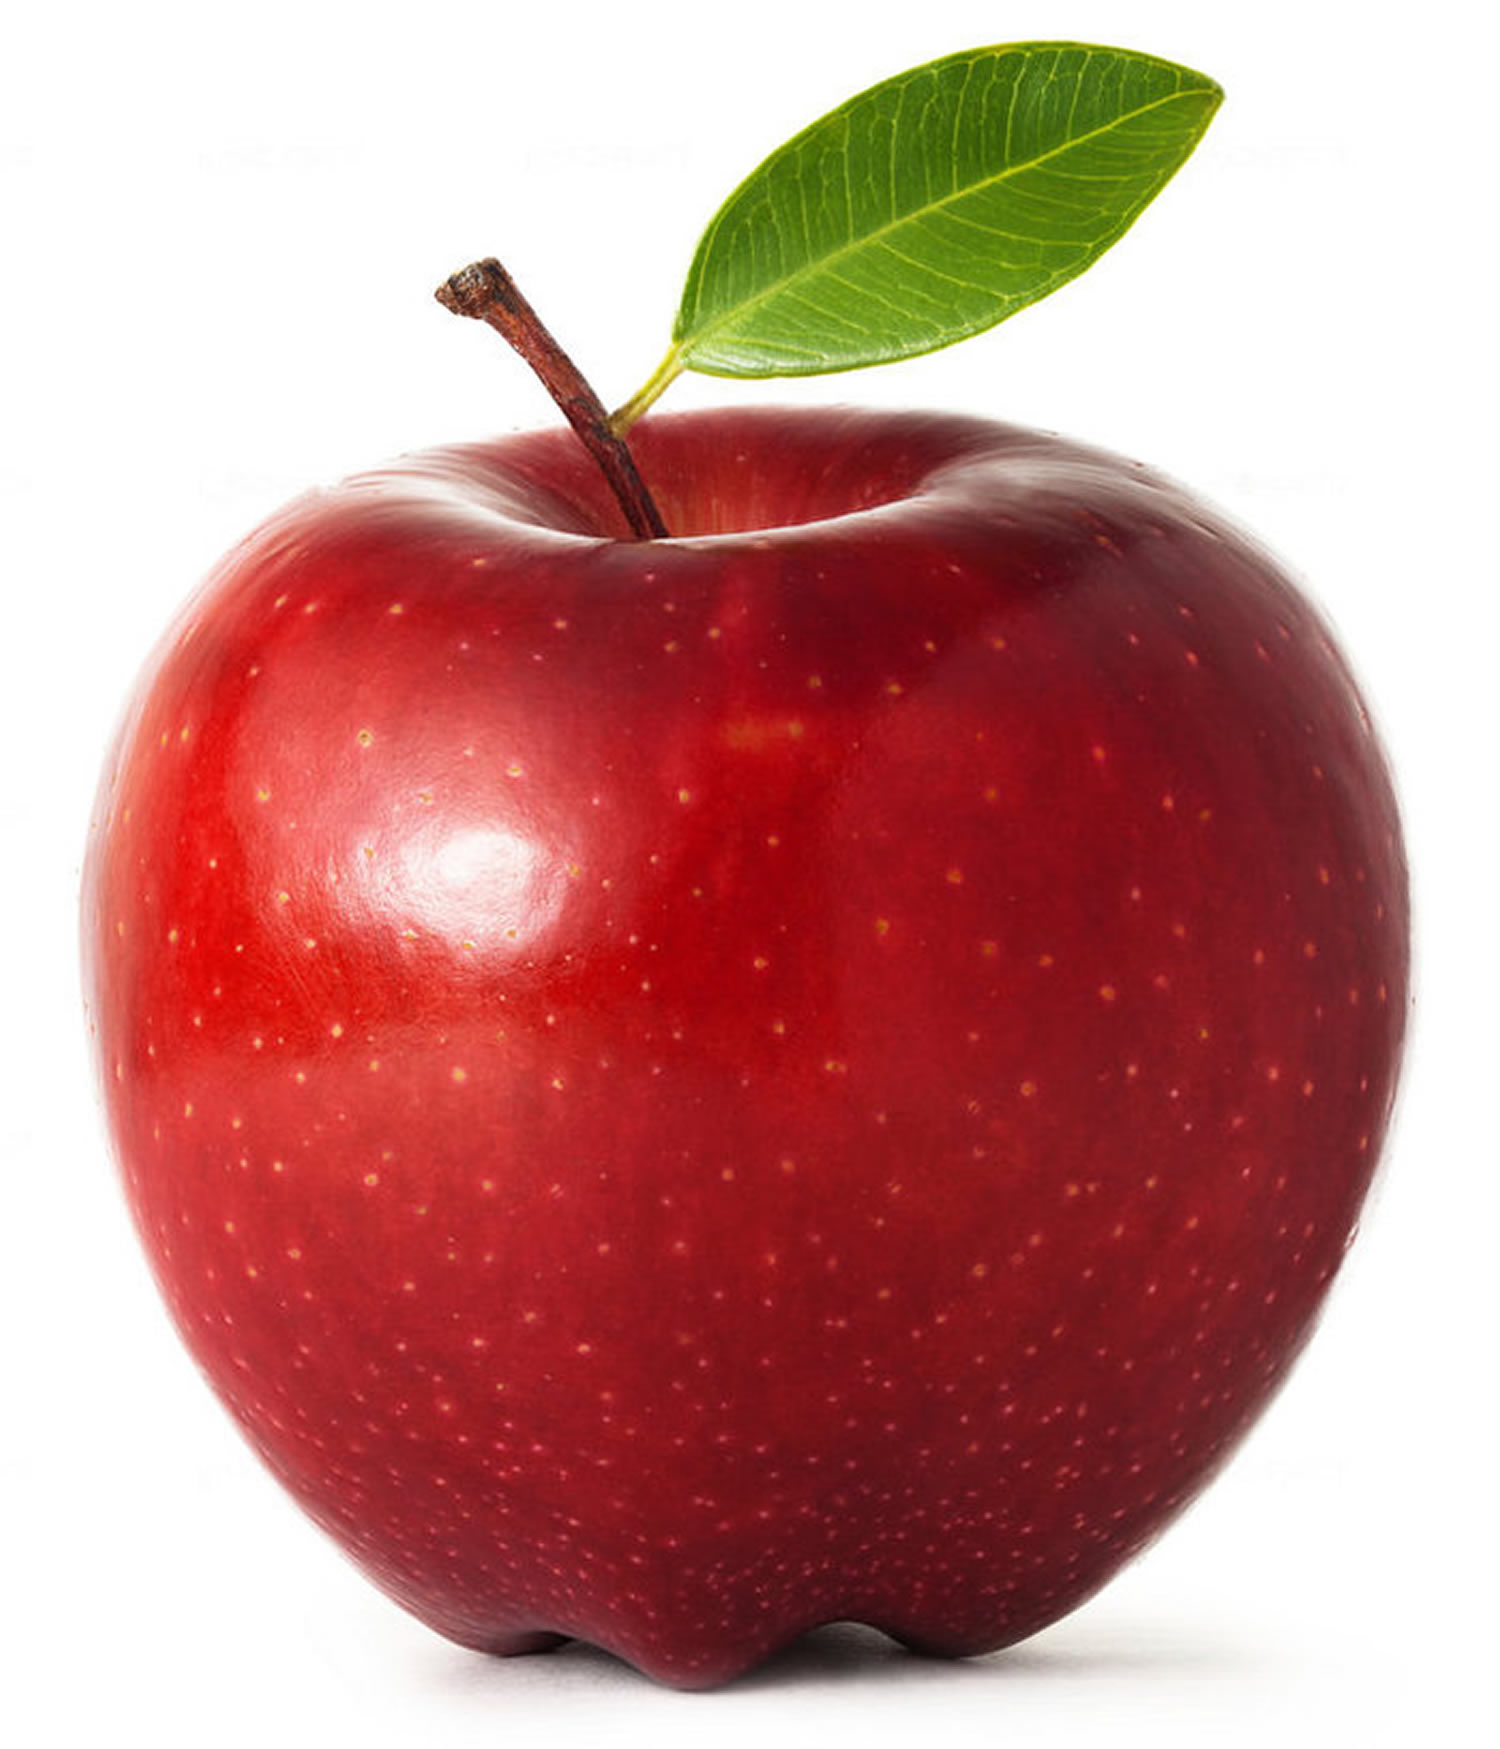 Apple Fruit - Nutrition Facts - Apple Fruit Health Benefits